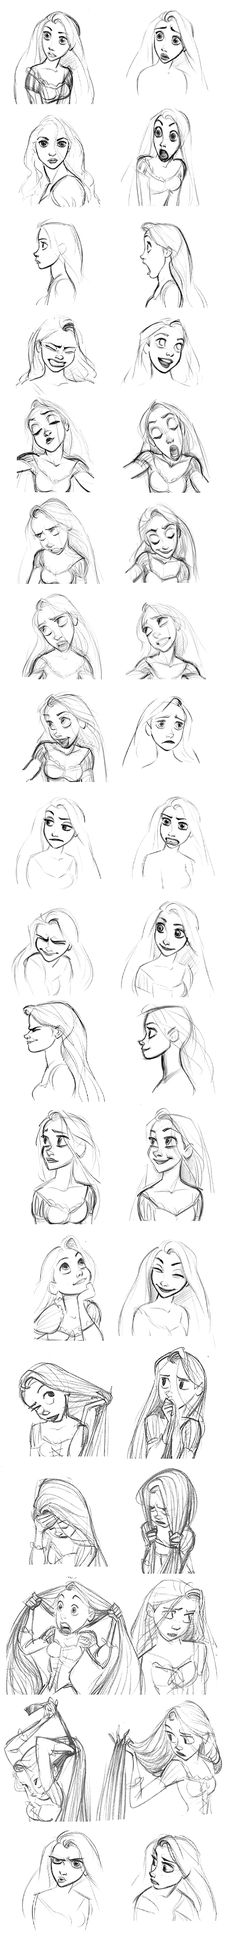 """Rapunzel (Tangled)"" Expressions 